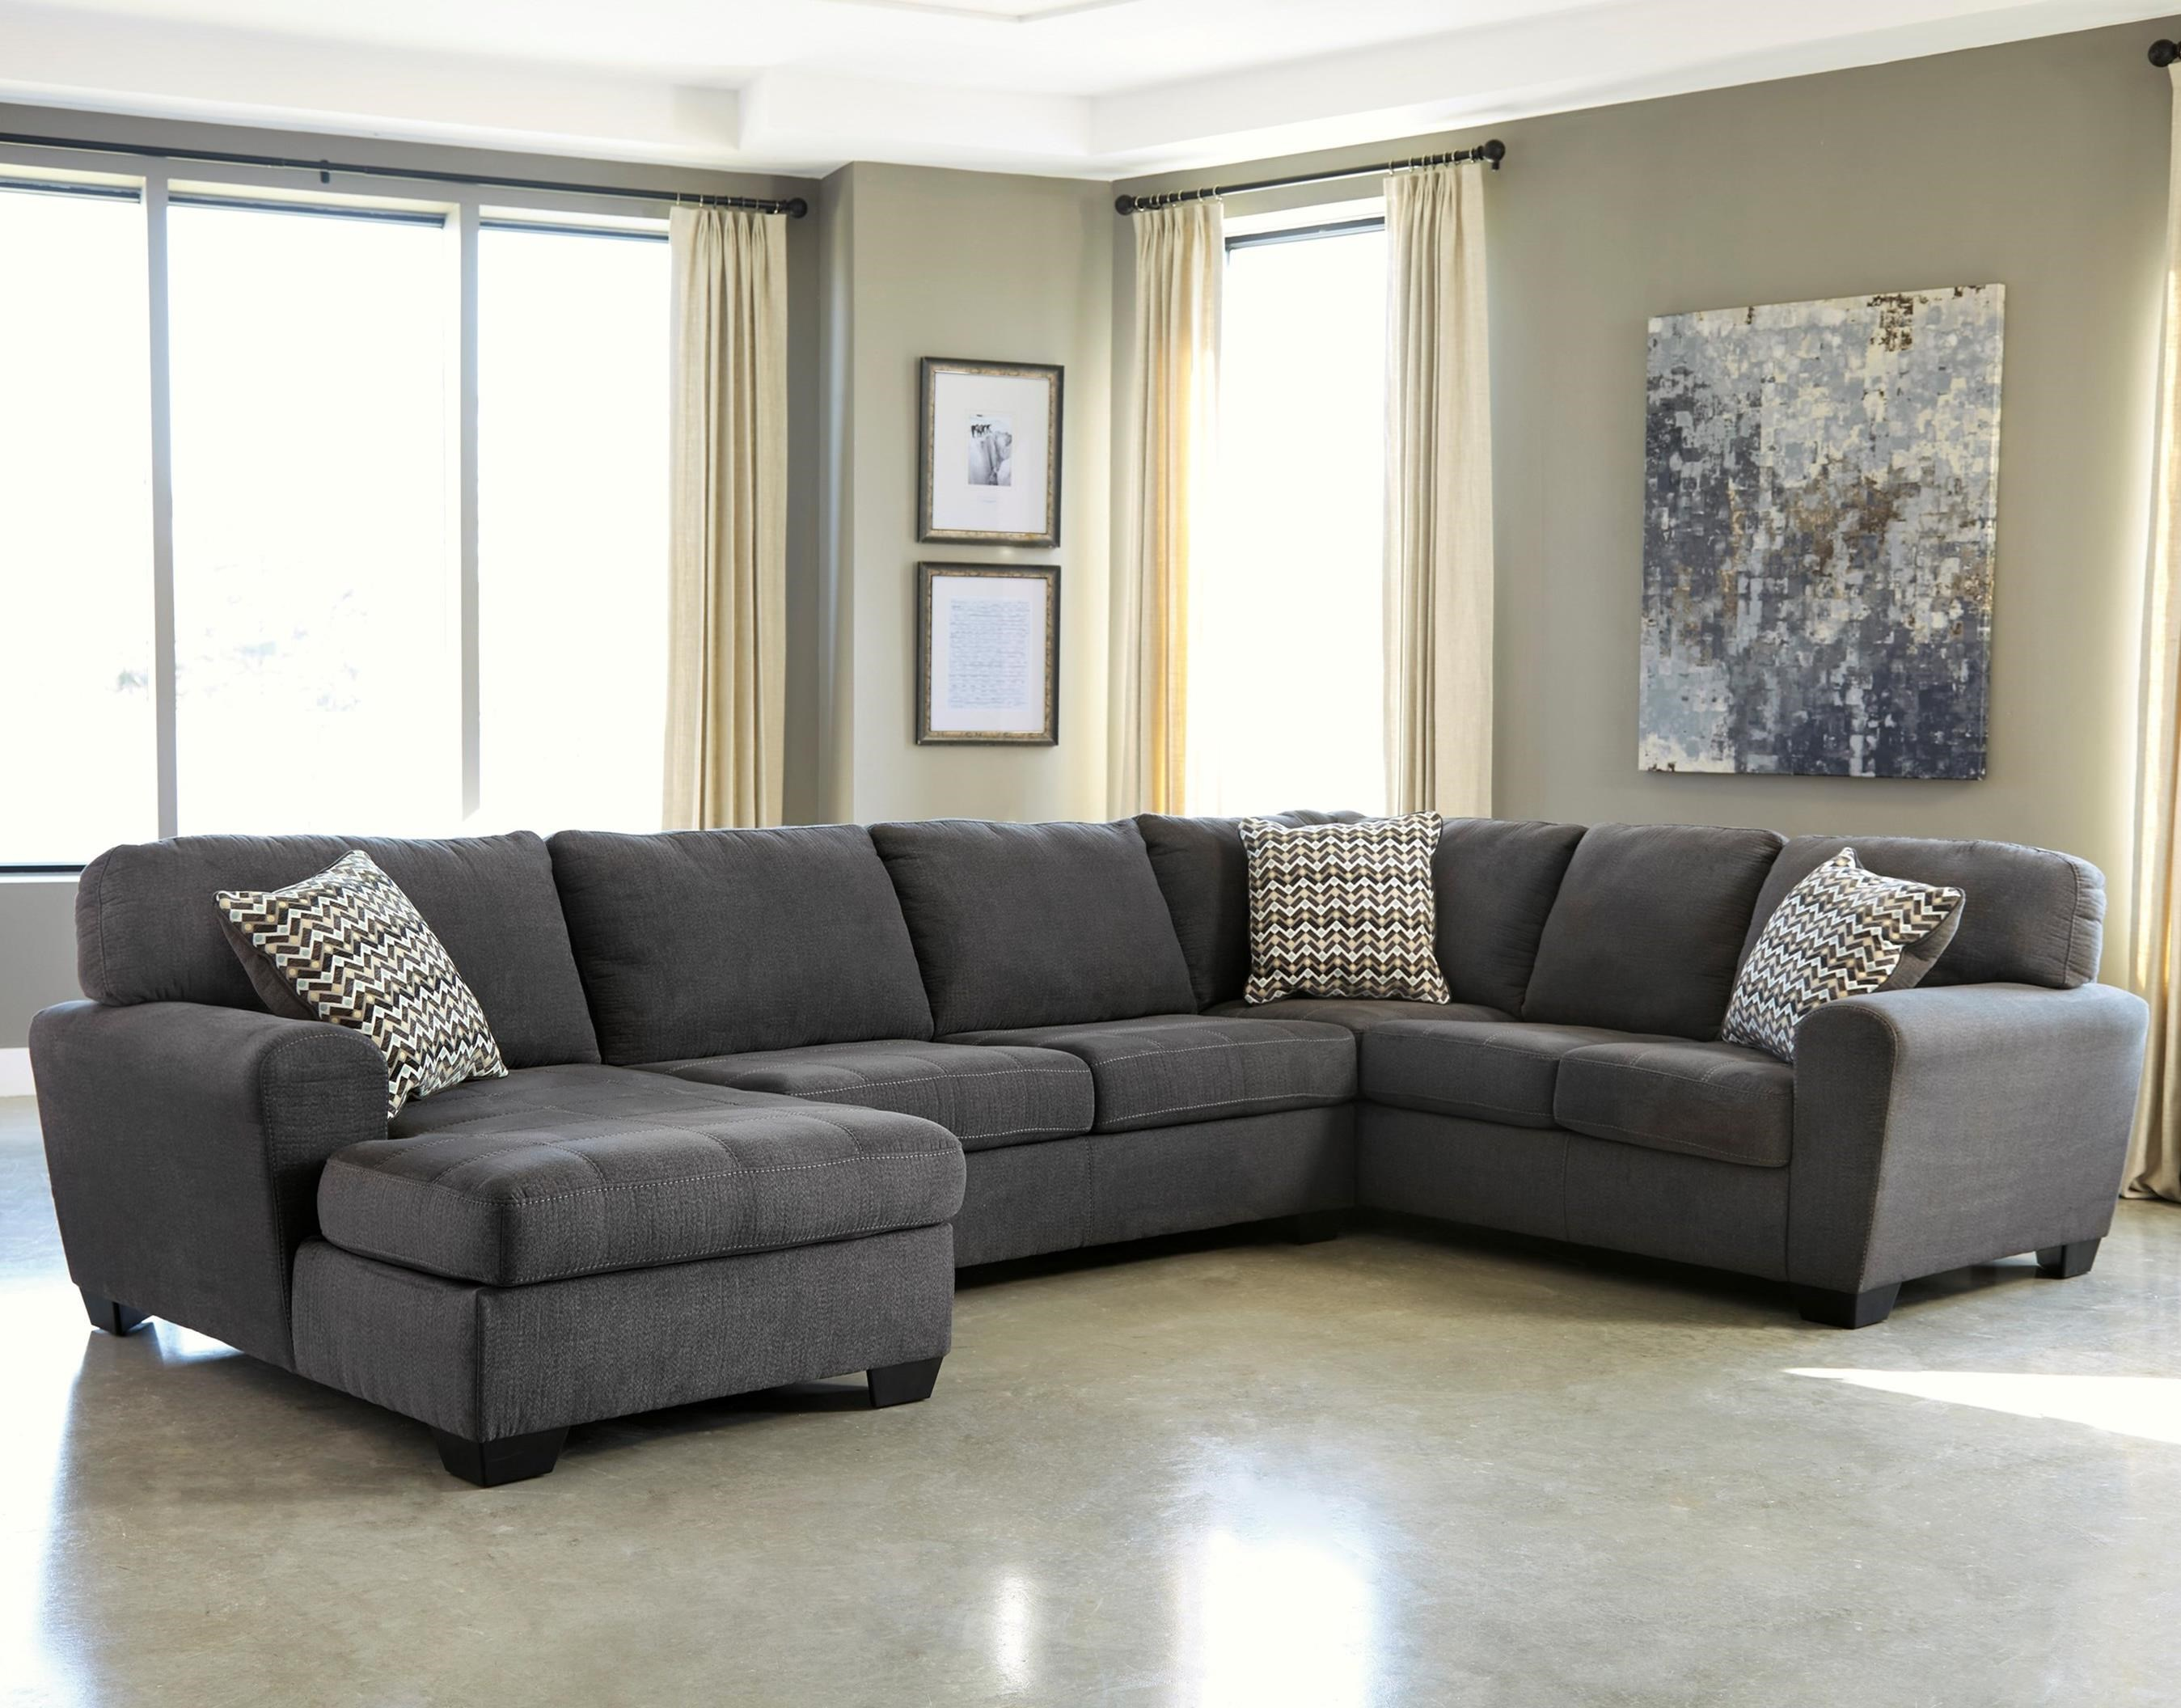 Ambee 3-Piece Sectional with Chaise by Benchcraft at Standard Furniture